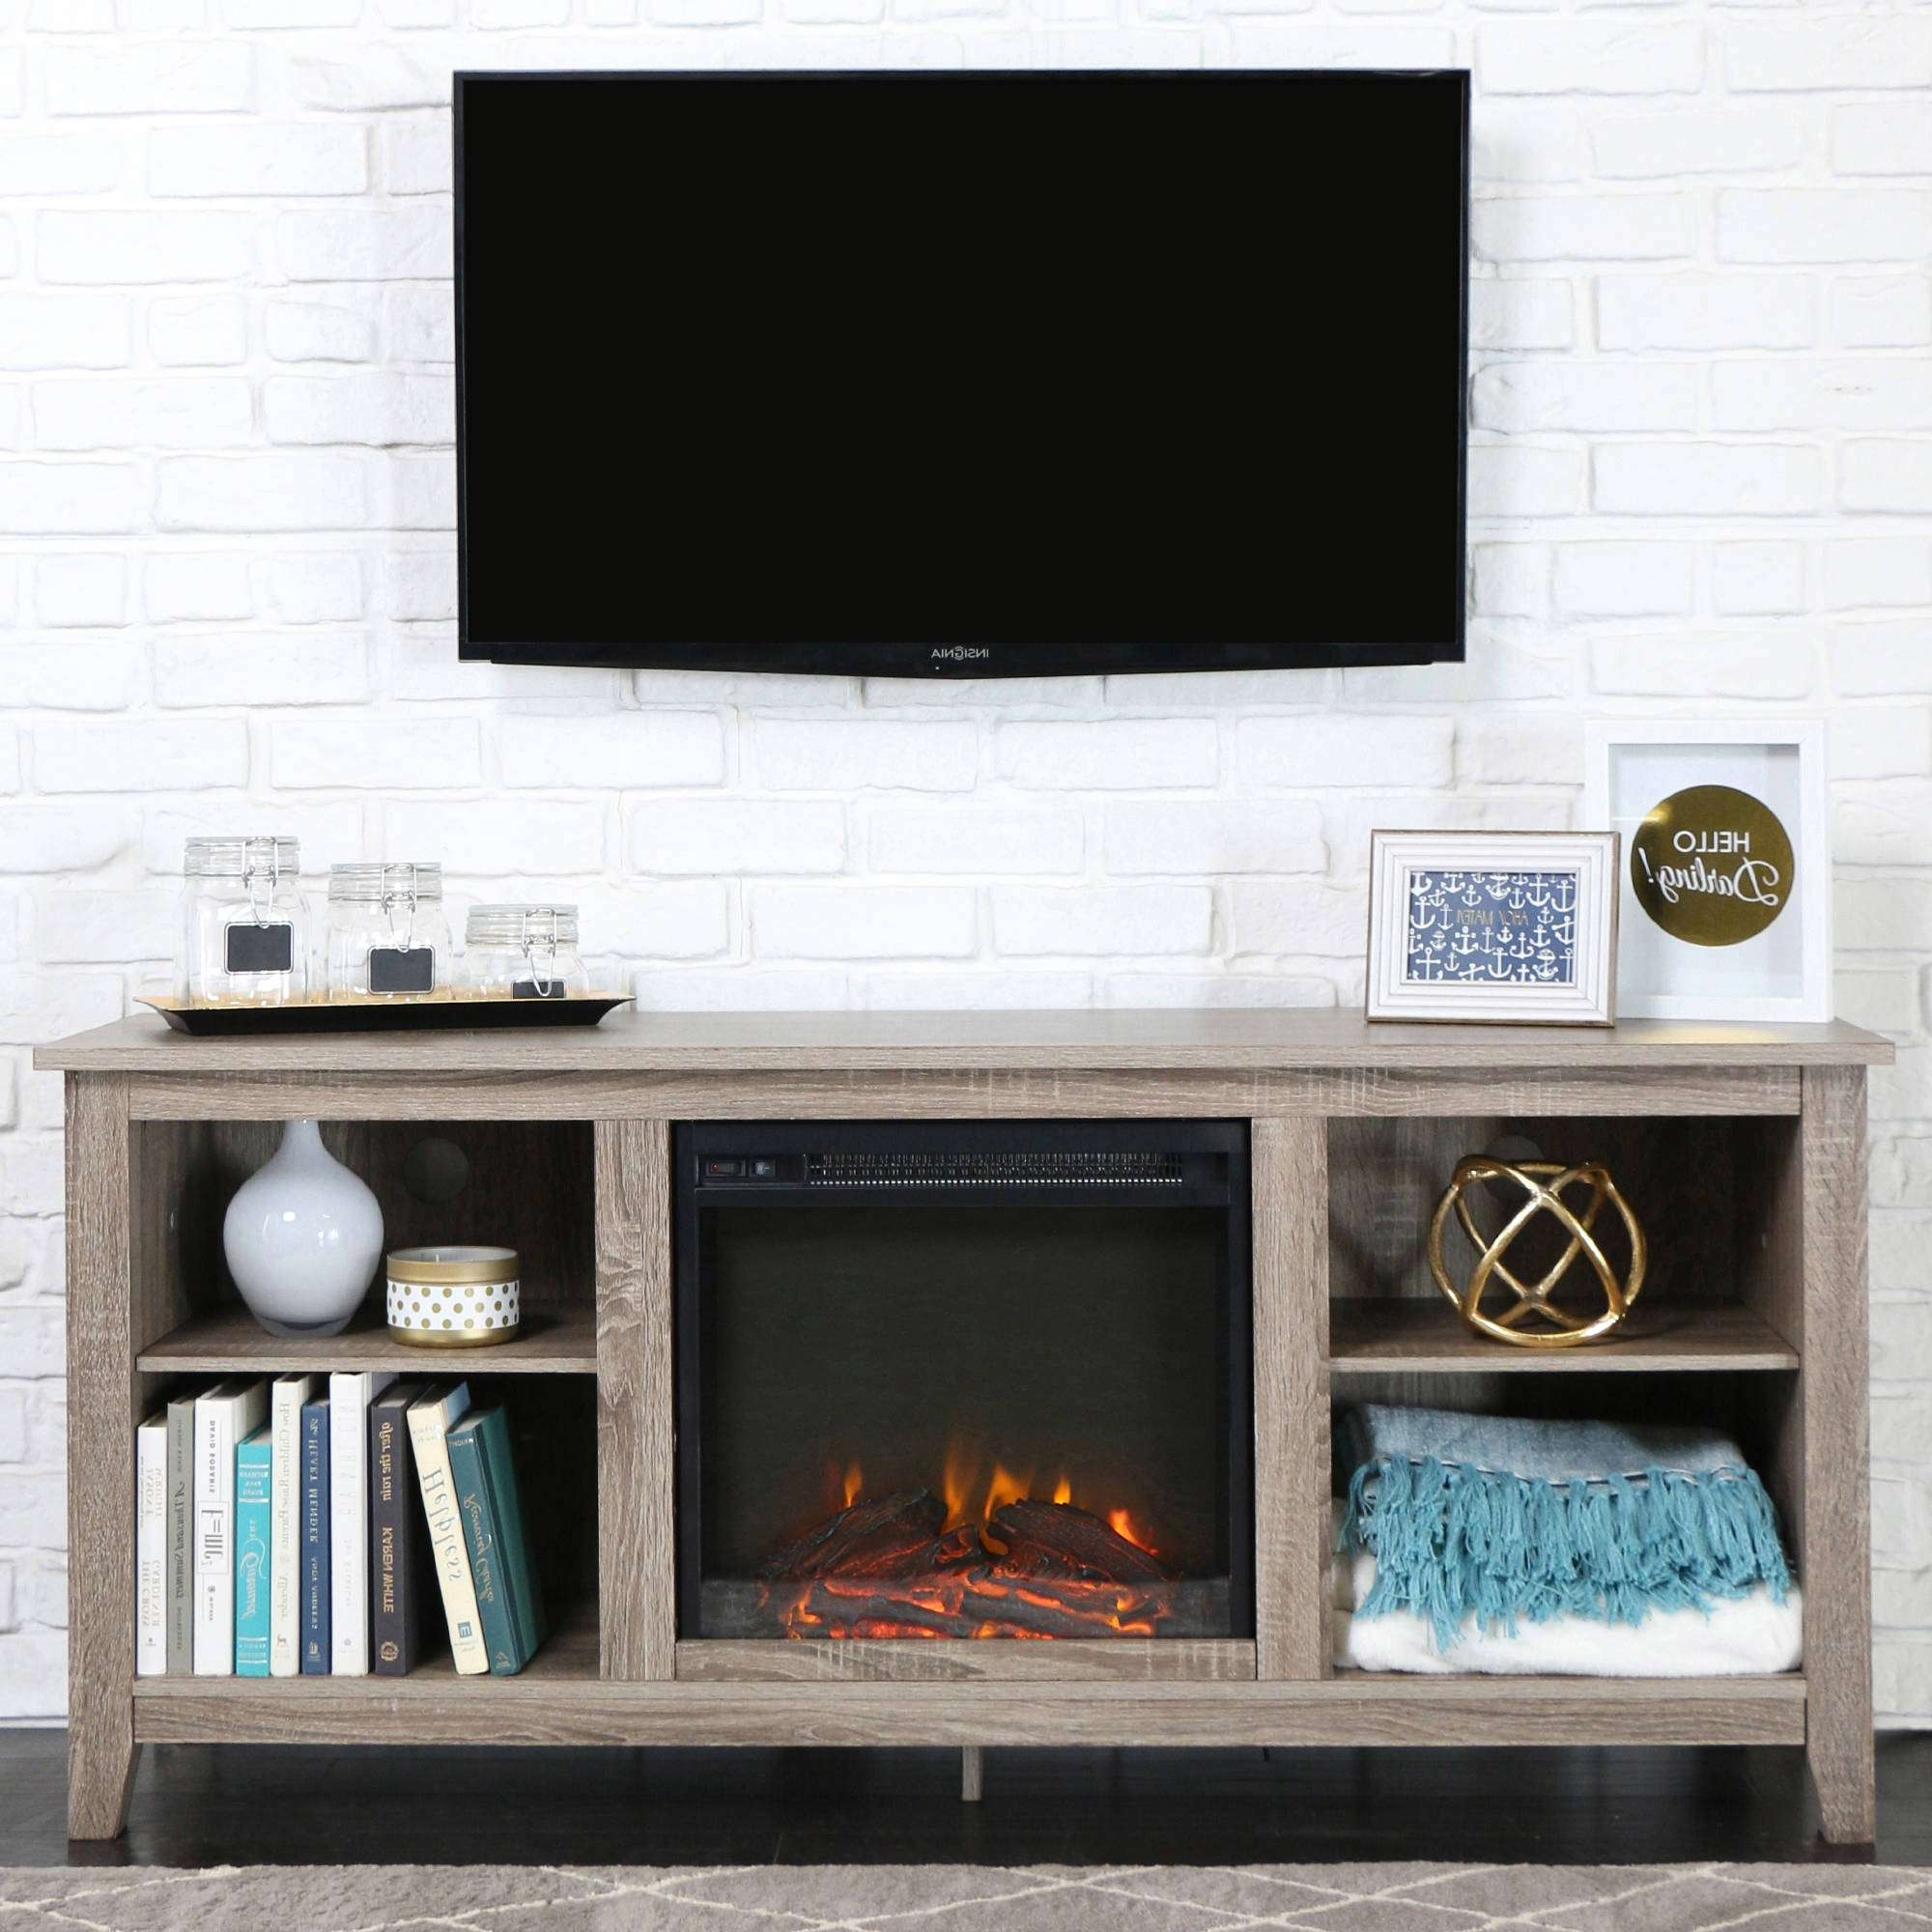 Tv : Bi Wonderful 24 Inch Wide Tv Stands Amazon Com Simpli Home Pertaining To 24 Inch Tall Tv Stands (View 8 of 15)